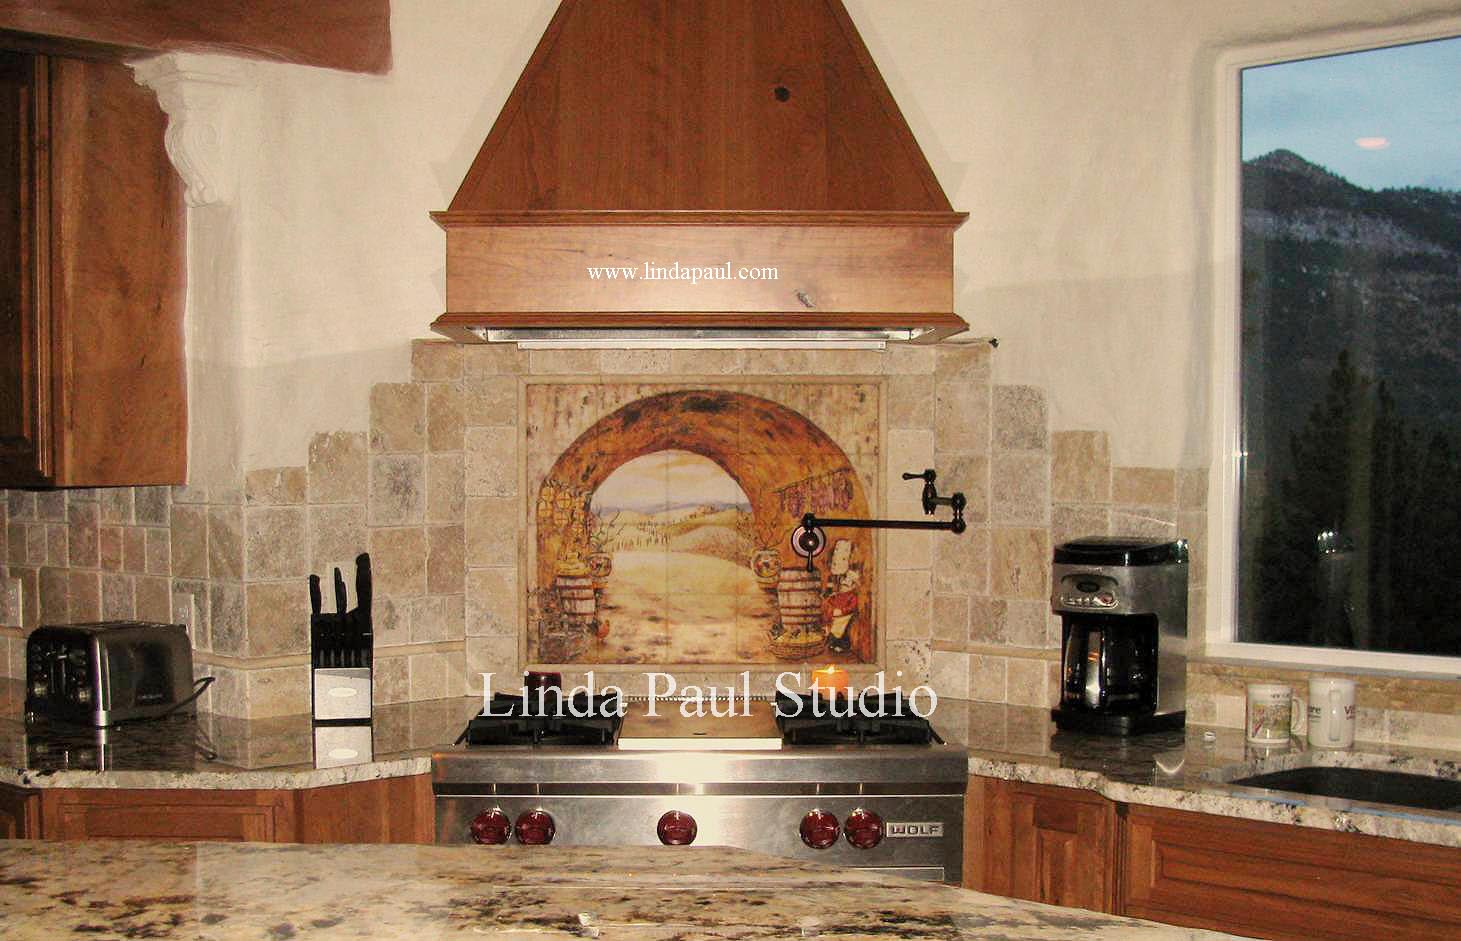 Uncategorized Kitchen Murals Backsplash tuscan backsplash tile wall murals tiles backsplashes everything tuscany kitchen mural by artist linda paul